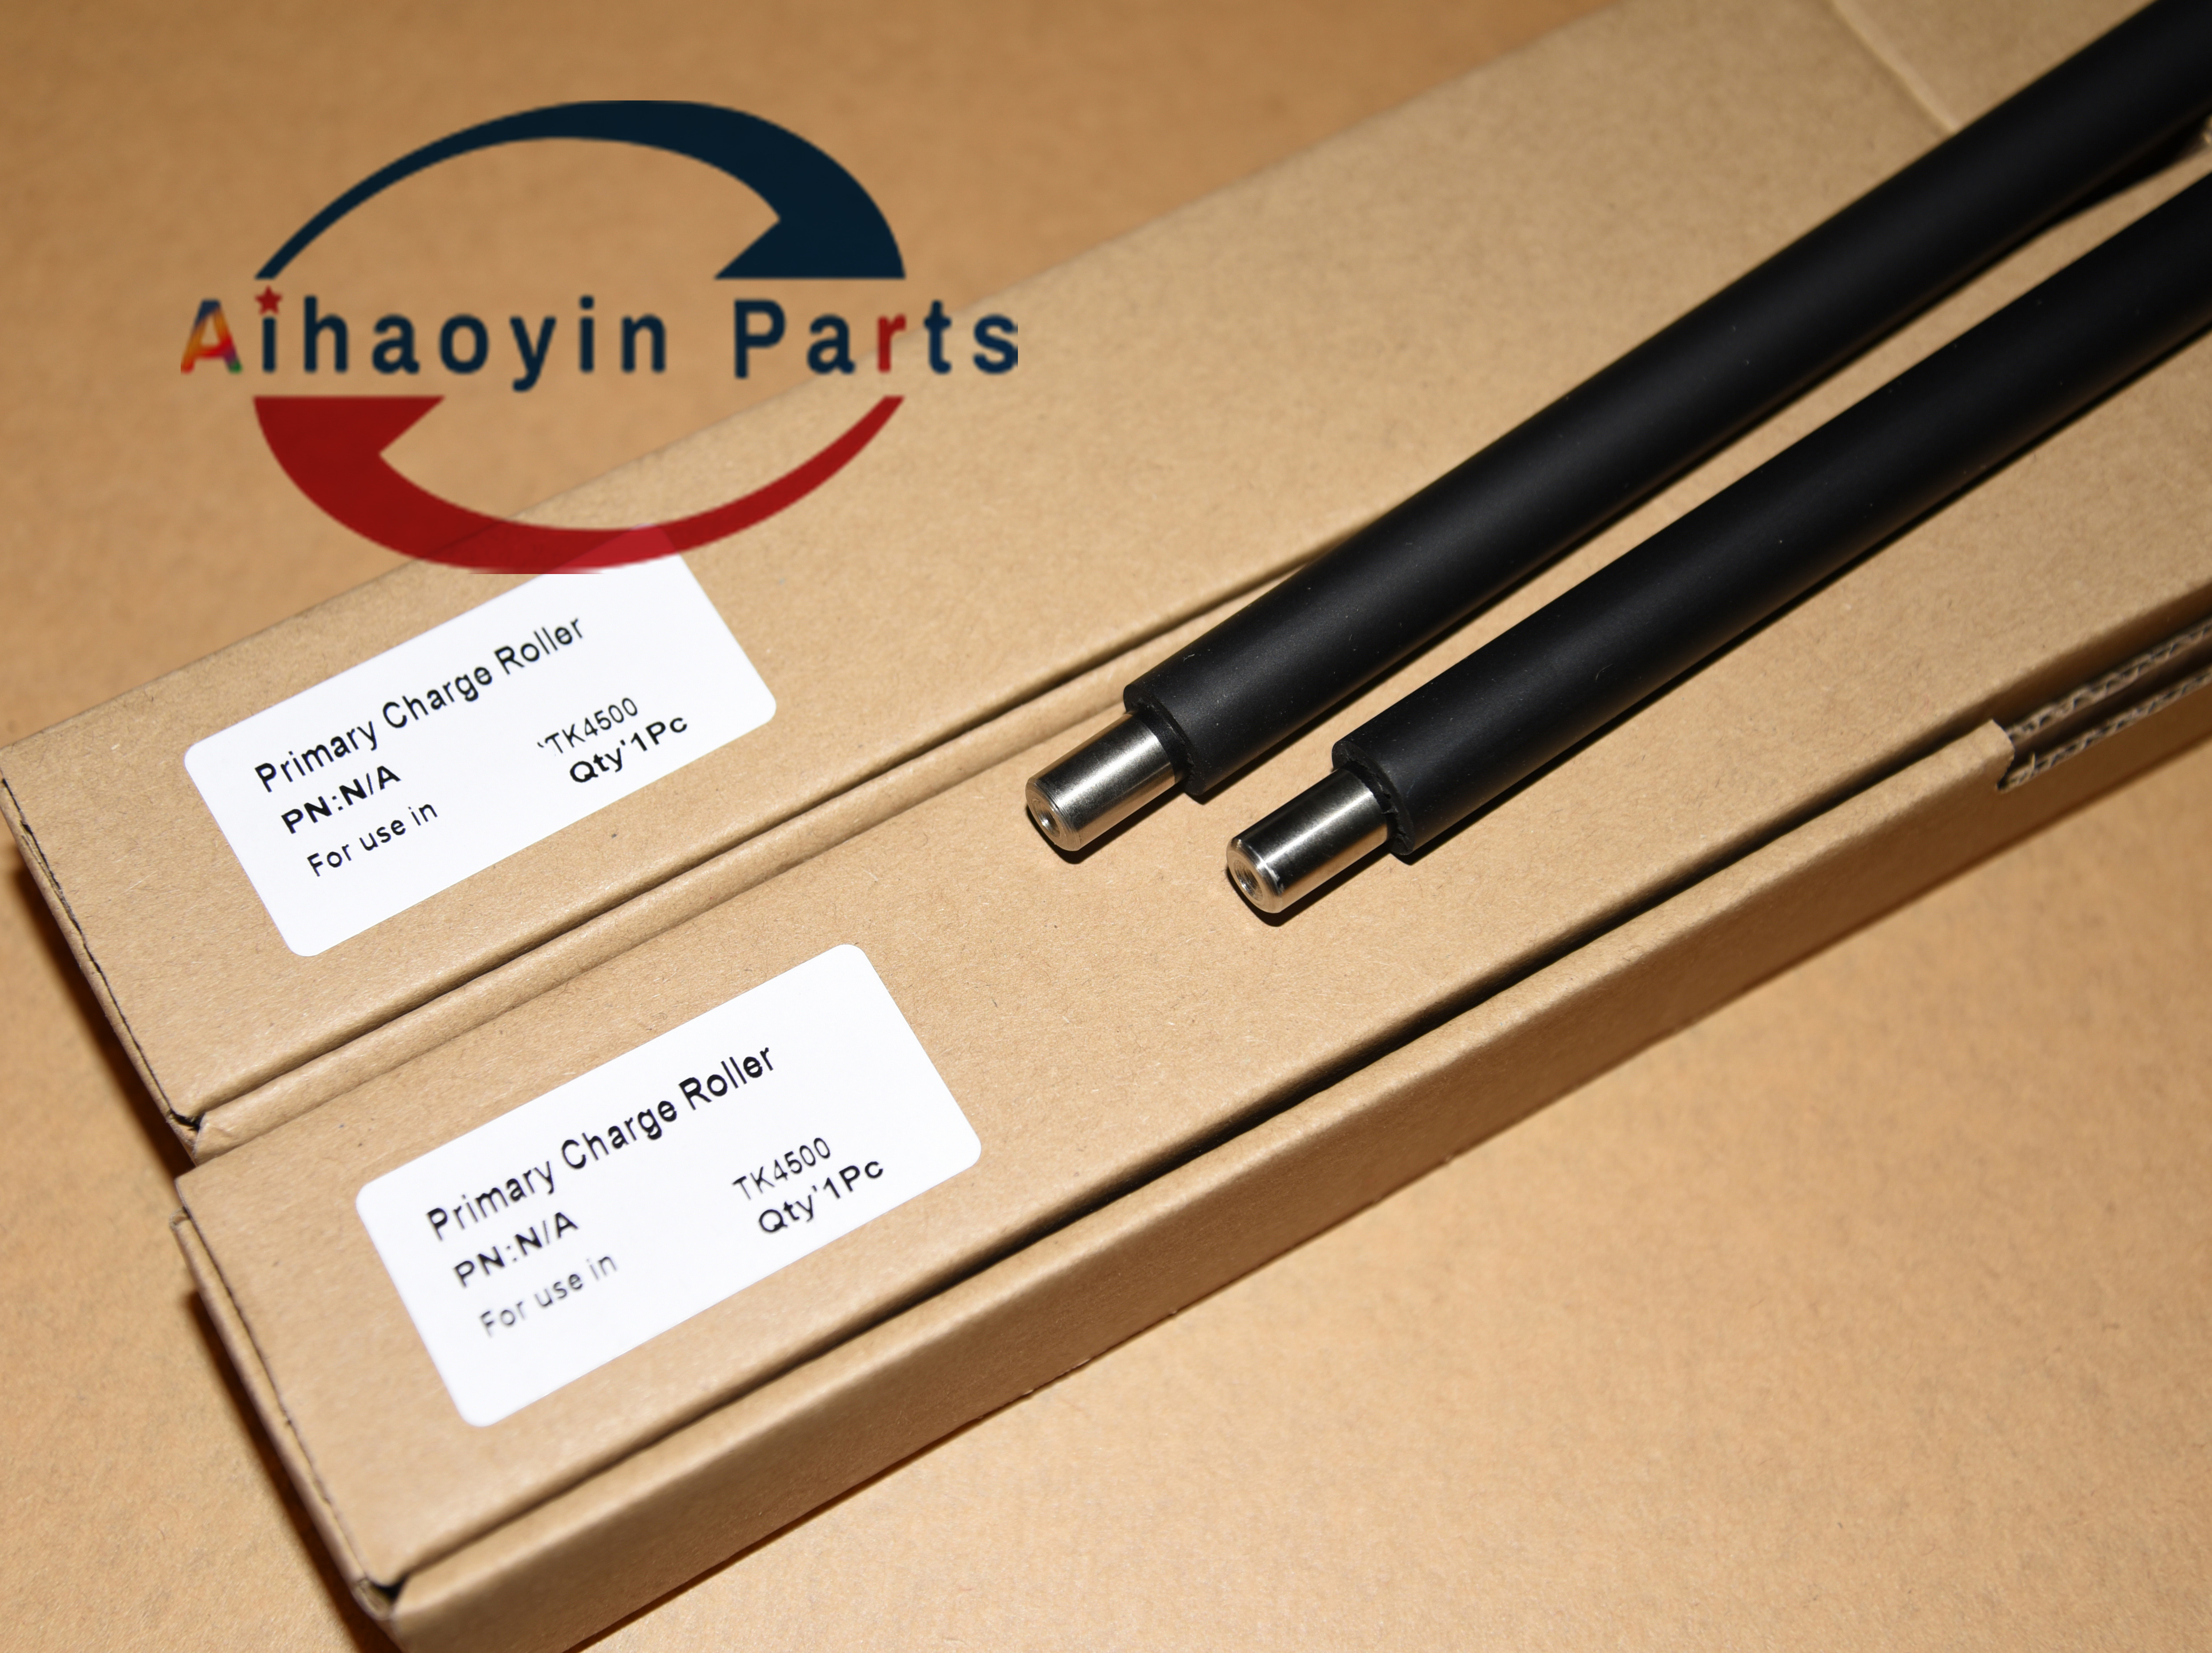 1pcs new  Charger Primary Charge Roller PCR for Kyocera TASKalfa 3050ci 3051ci 3550ci 3551ci 4550ci 4551ci 5550ci 5551ci 6550ci|Printer Parts| |  - title=